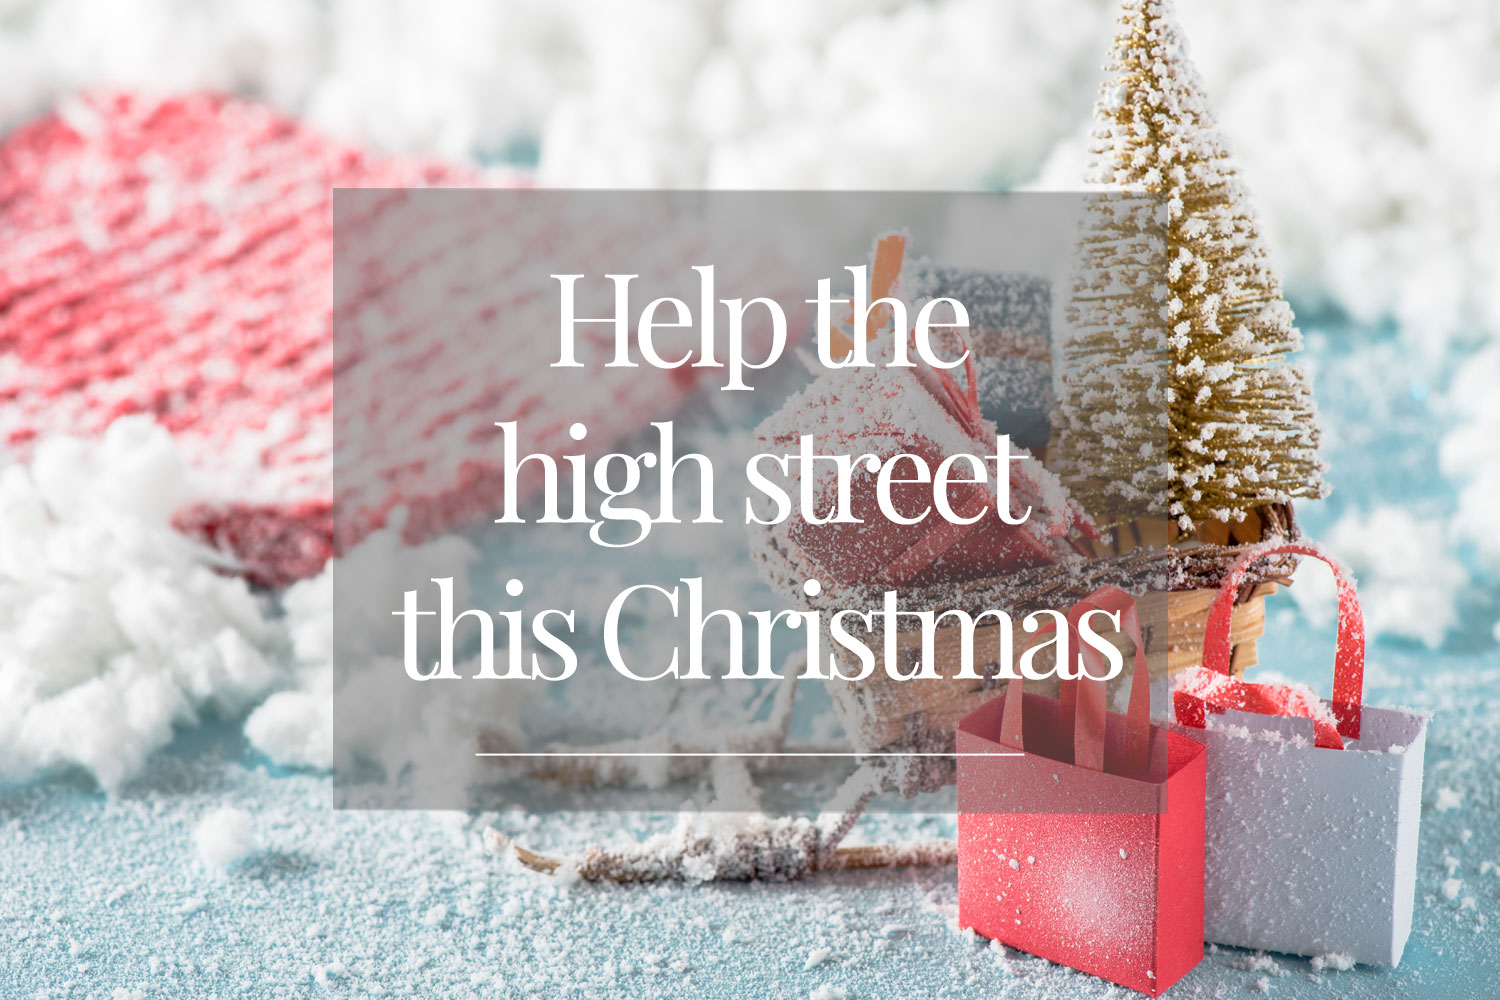 Help-the-high-street-this-Christmas